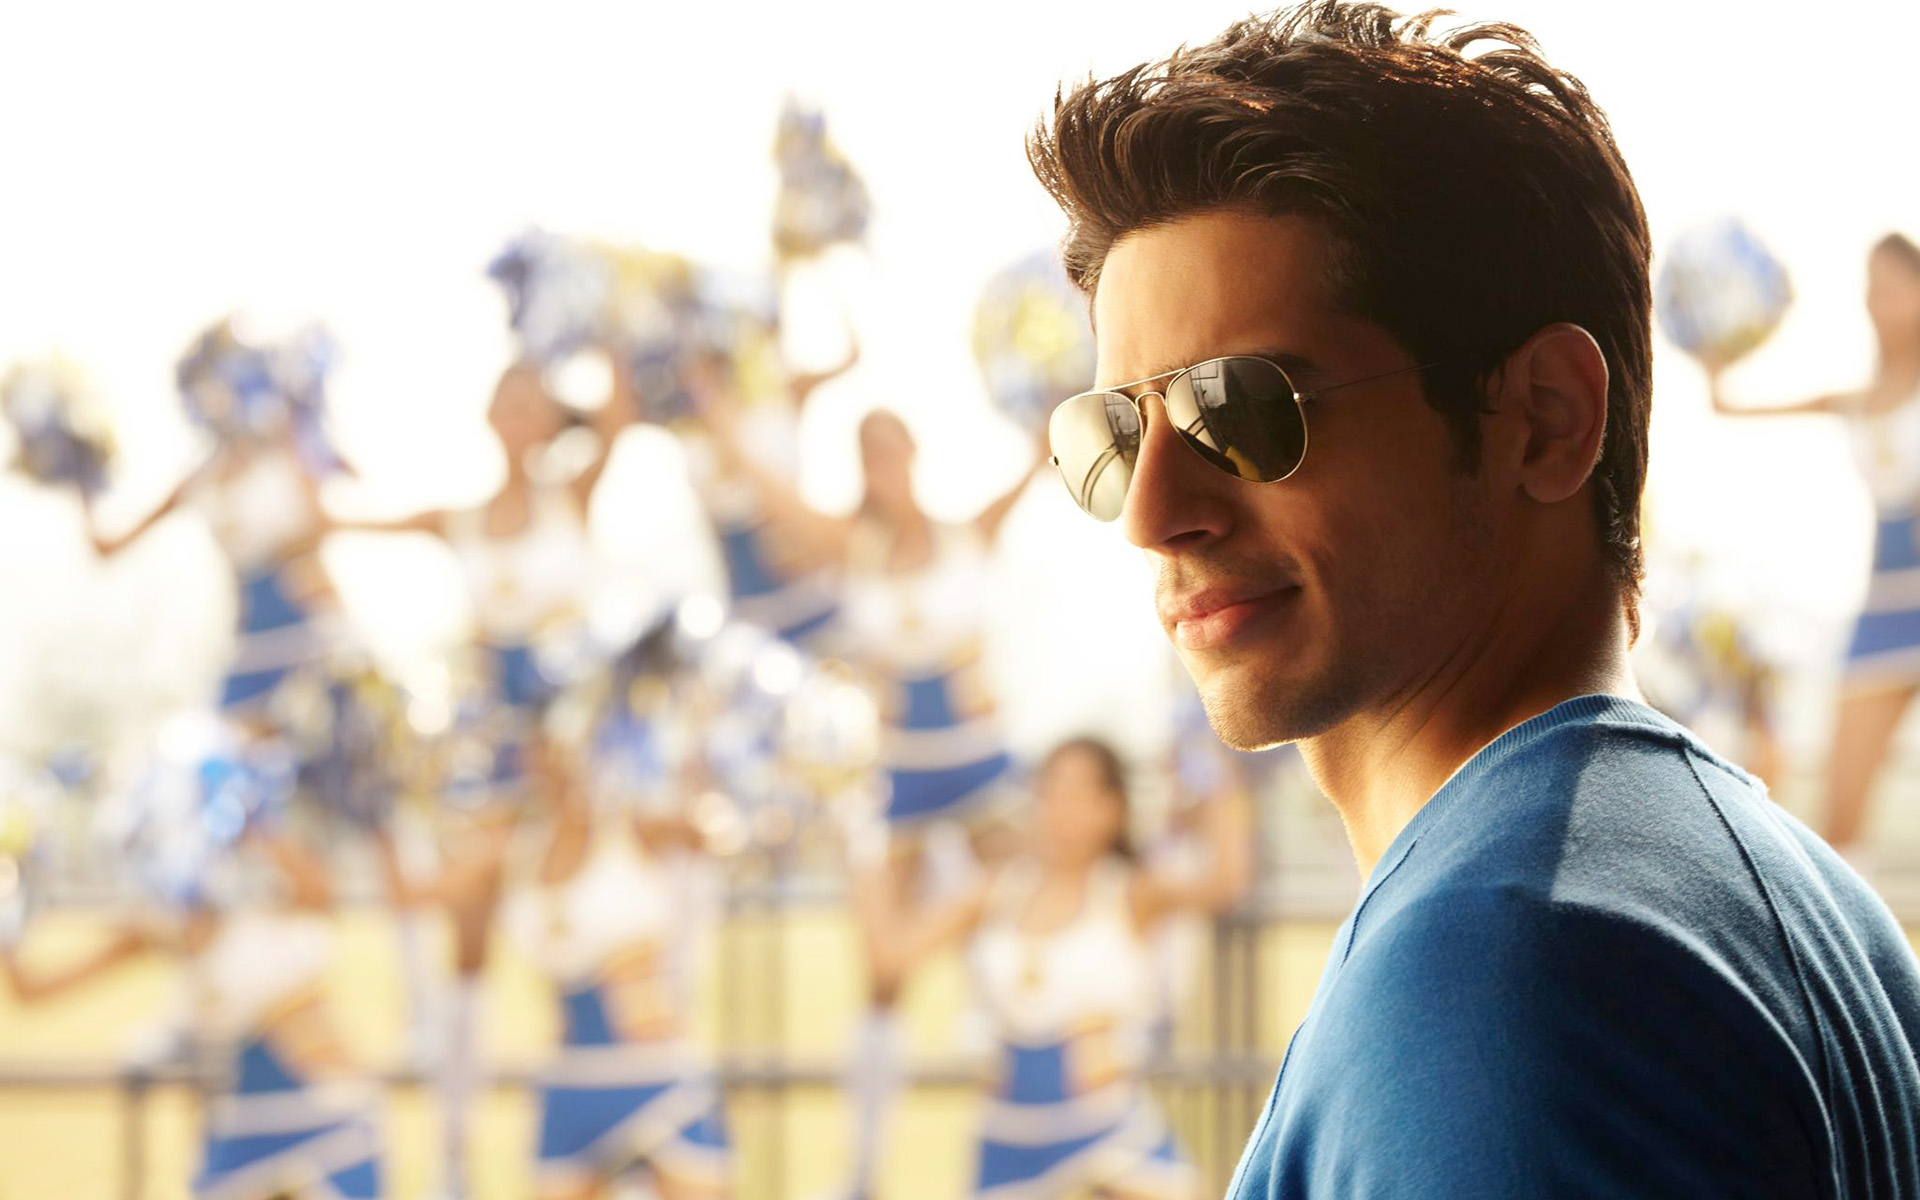 http://1.bp.blogspot.com/-F-JXt3x_u-c/UIEMWHSoS2I/AAAAAAAASjM/vb_lNx6gx90/s1920/Student-Of-The-Year-+Hot-Sidharth-Malhotra-HD-Wallaper-45.jpg